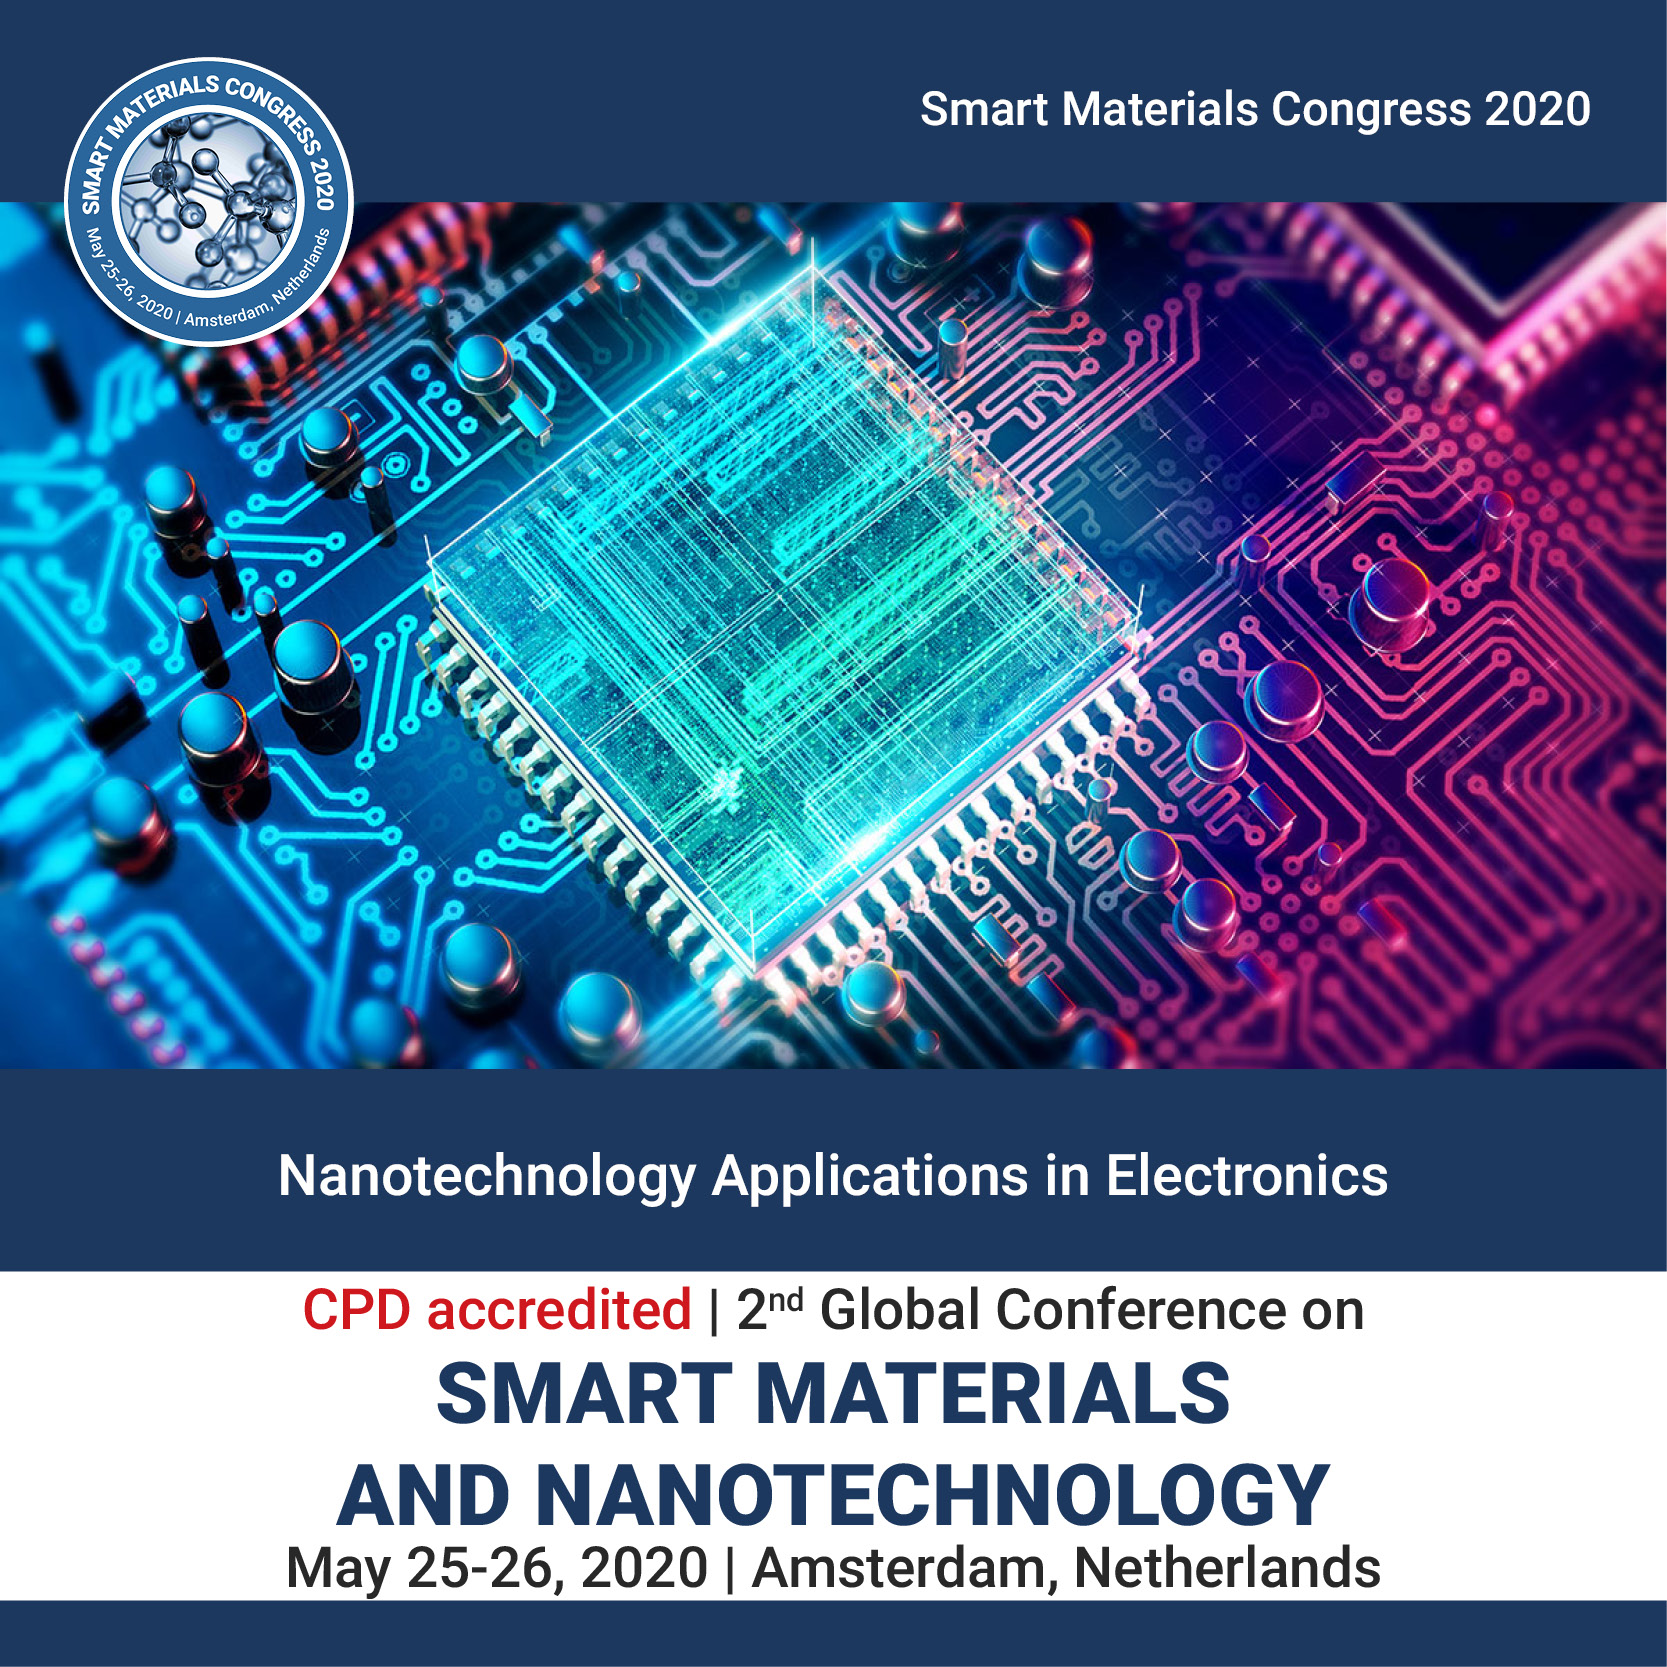 Nanotechnology Applications in Electronics Photo